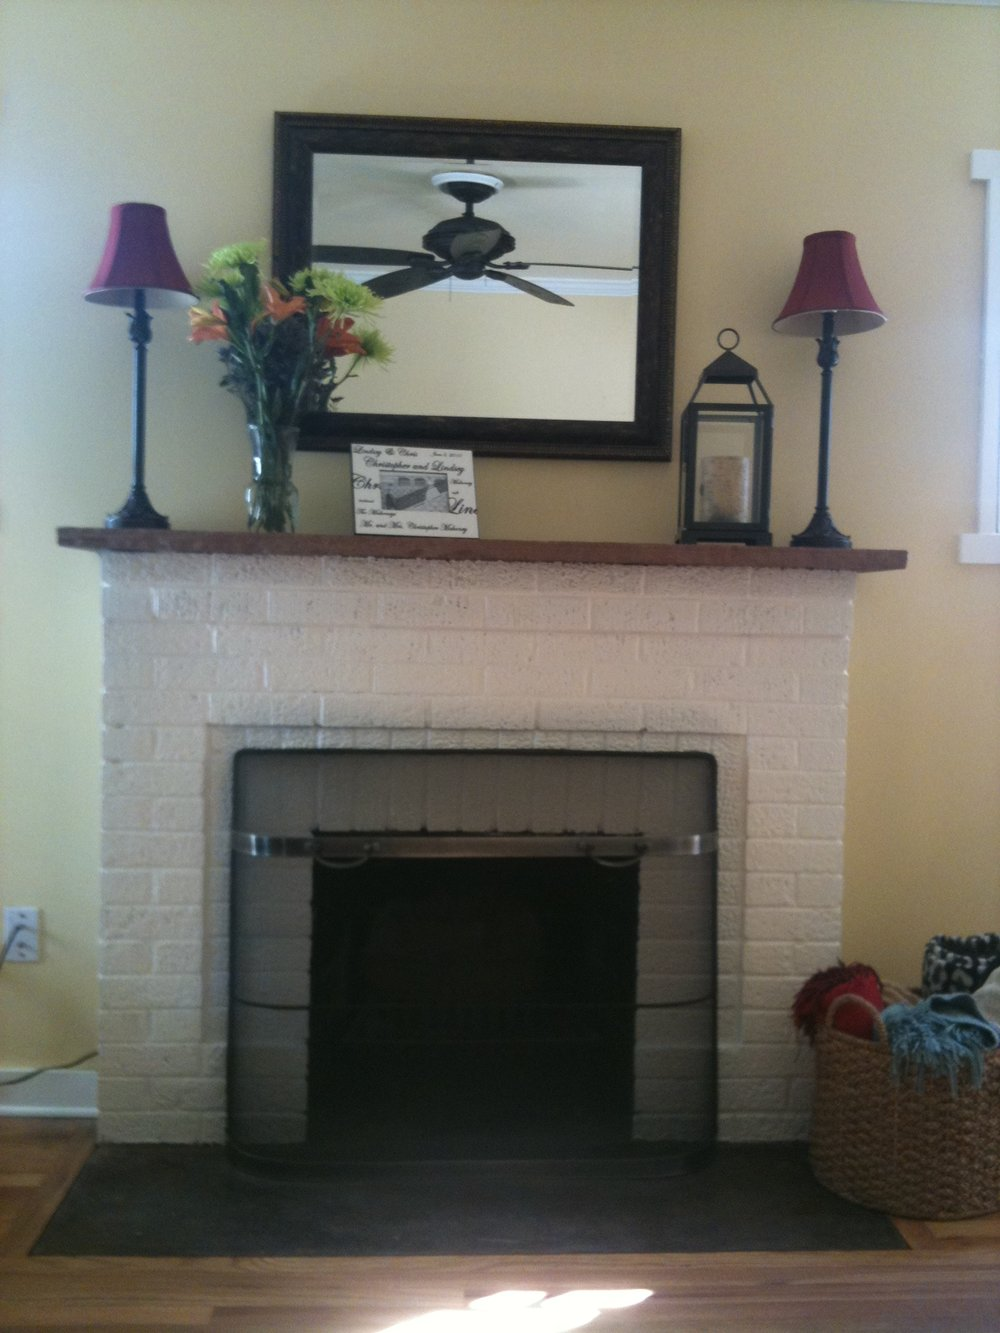 The fireplace once it was painted a fresh coat of white!